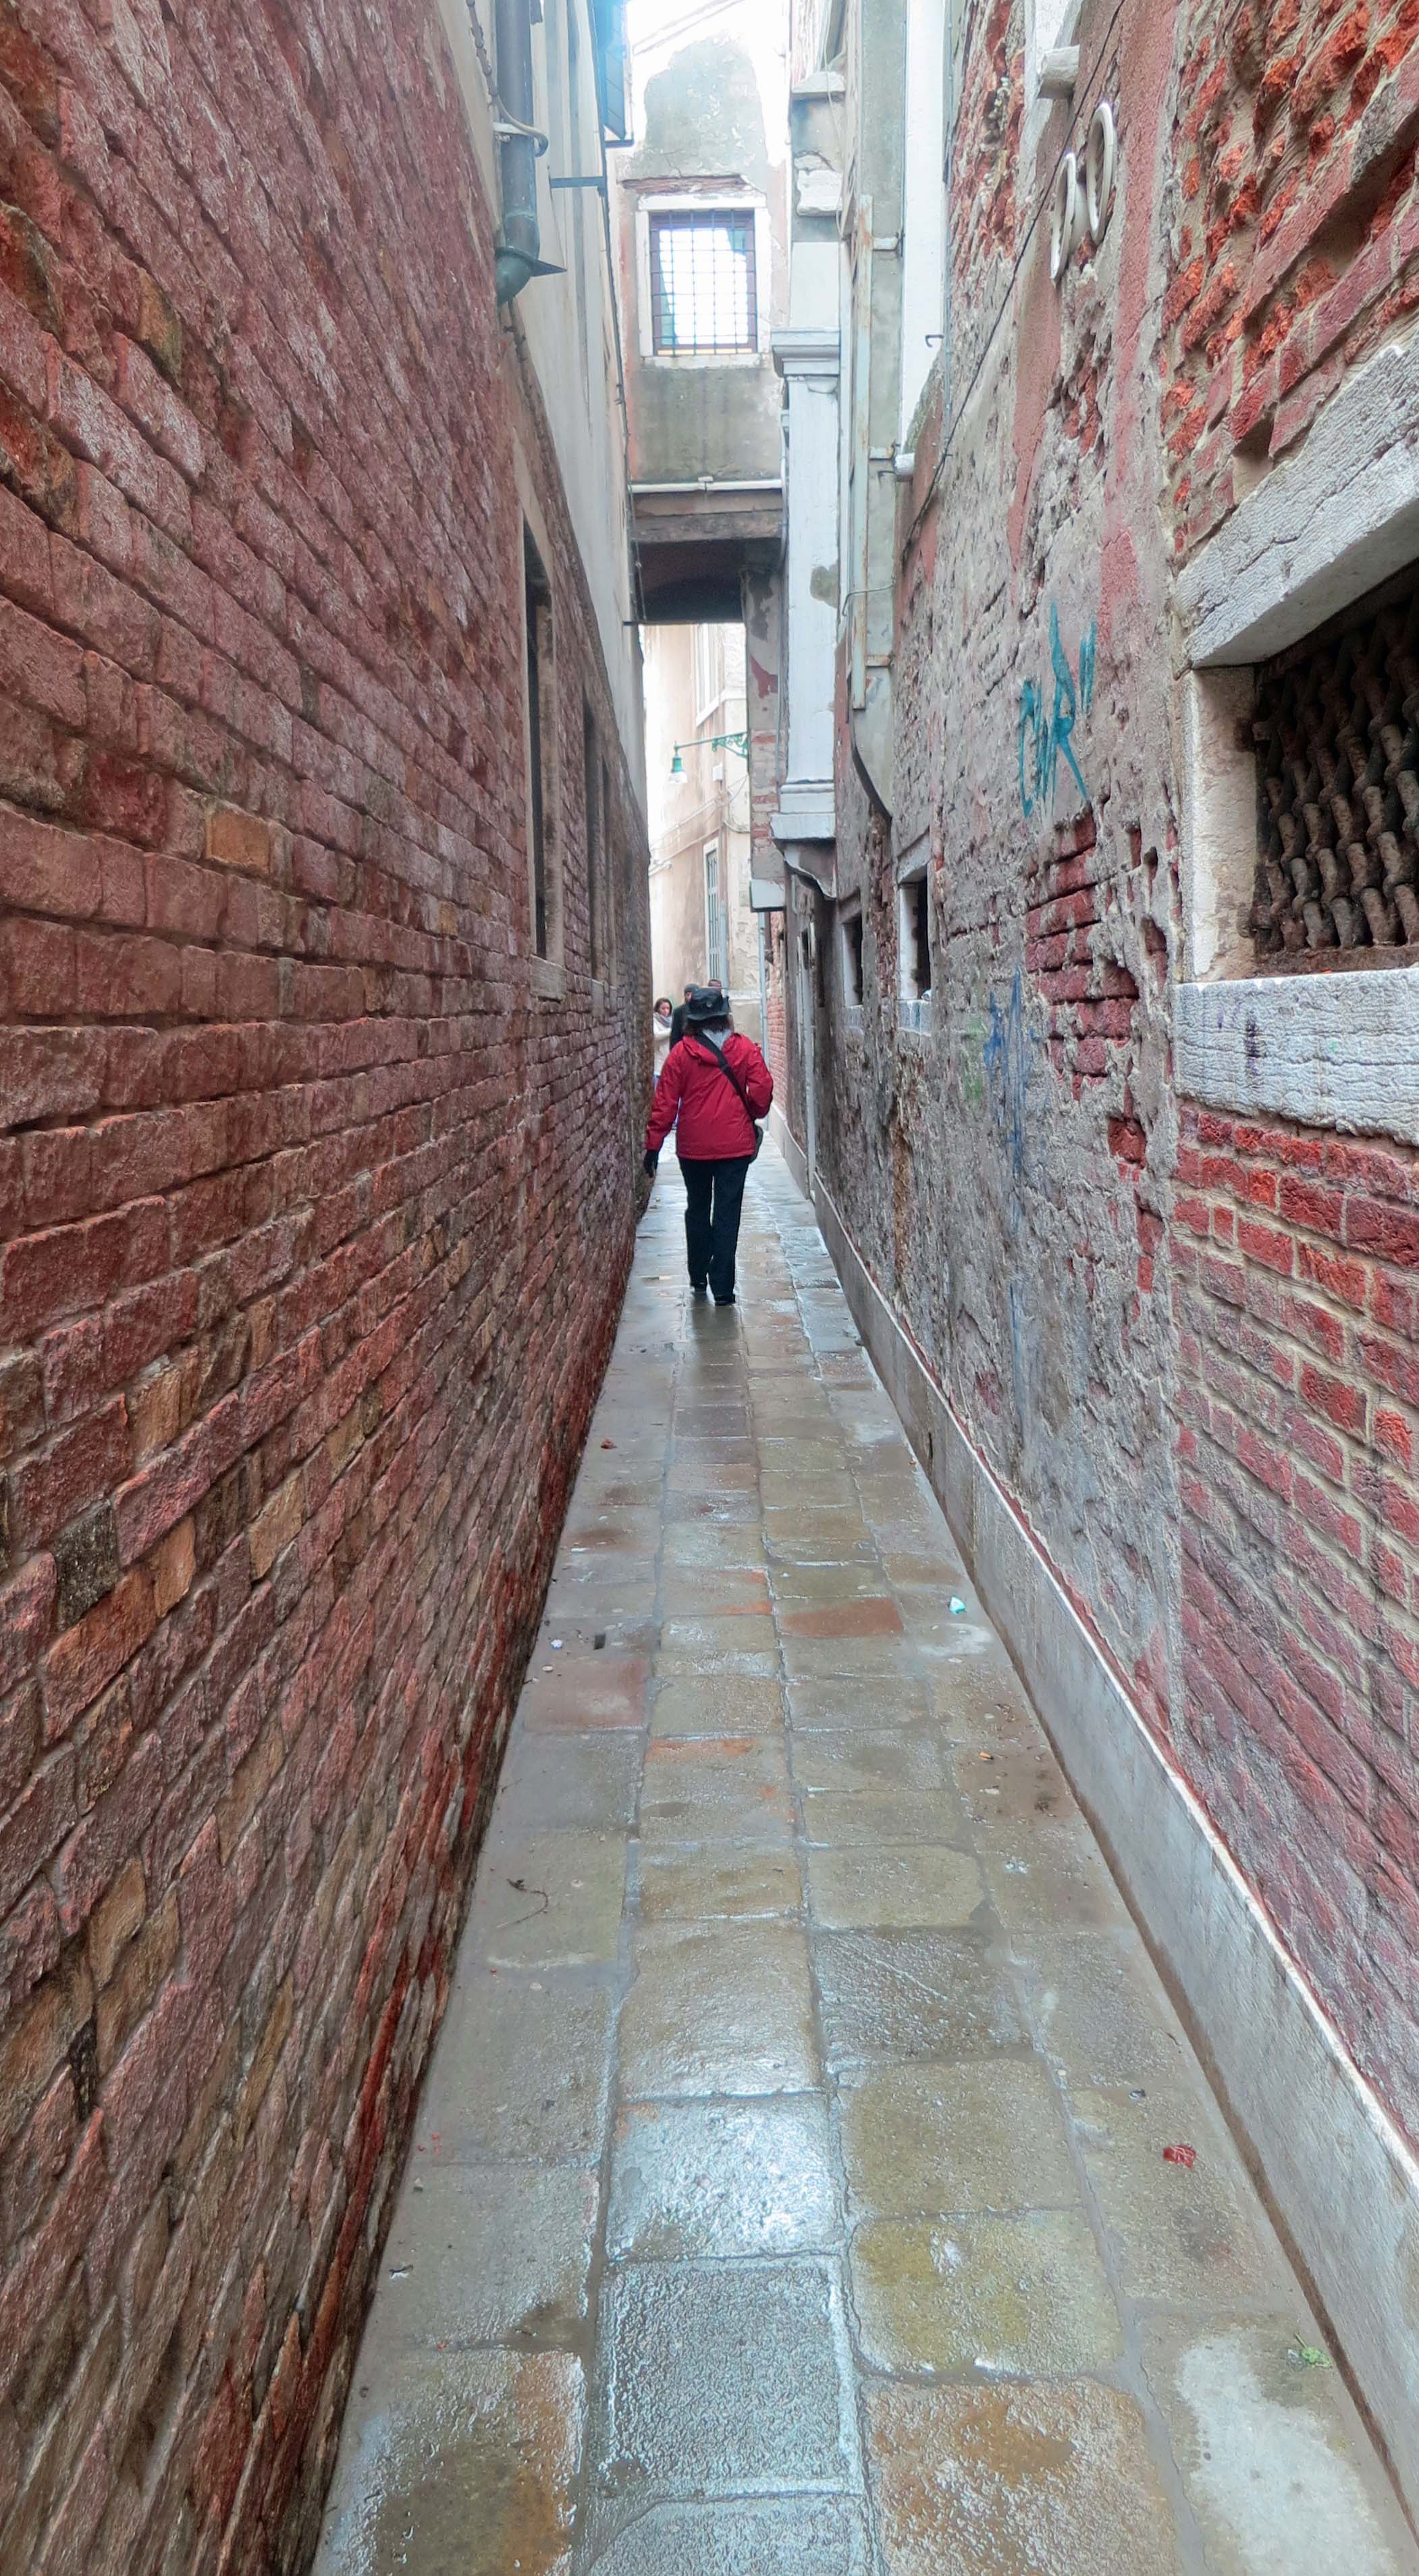 This photo provides a good example of our wandering off the main tourist routes of Venice.